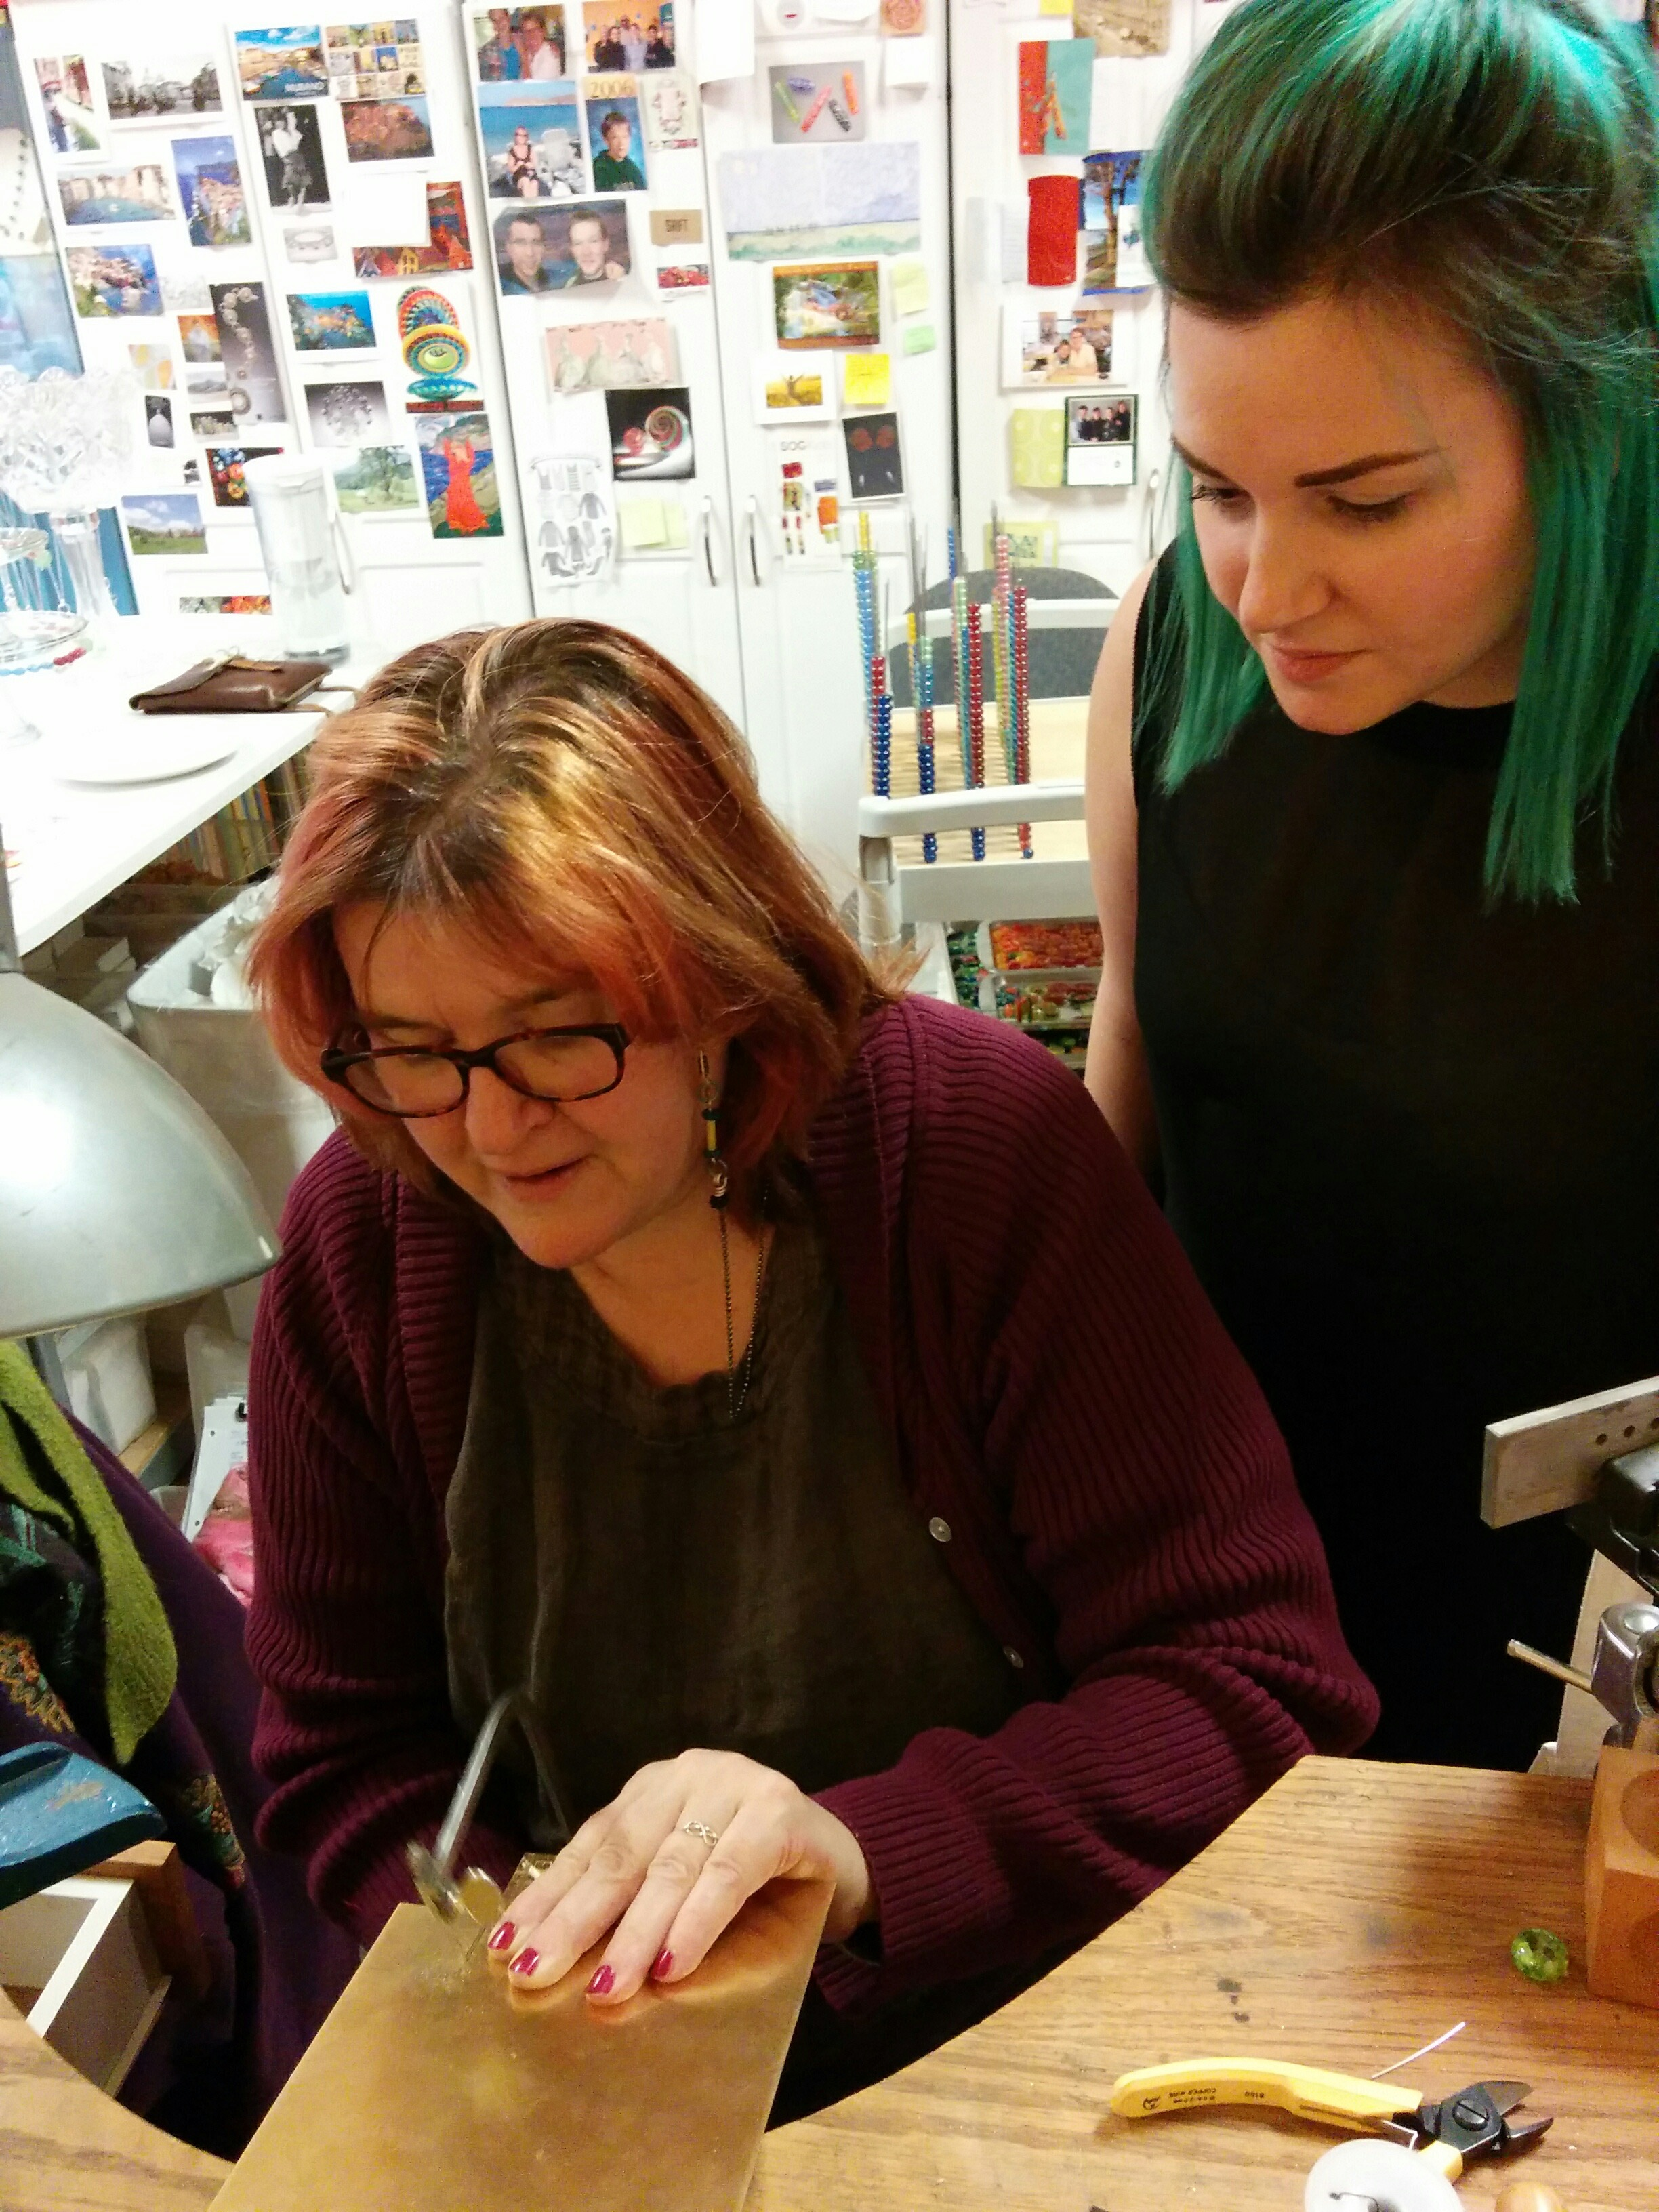 and here's Catherine MIller giving Laura a sawing demo